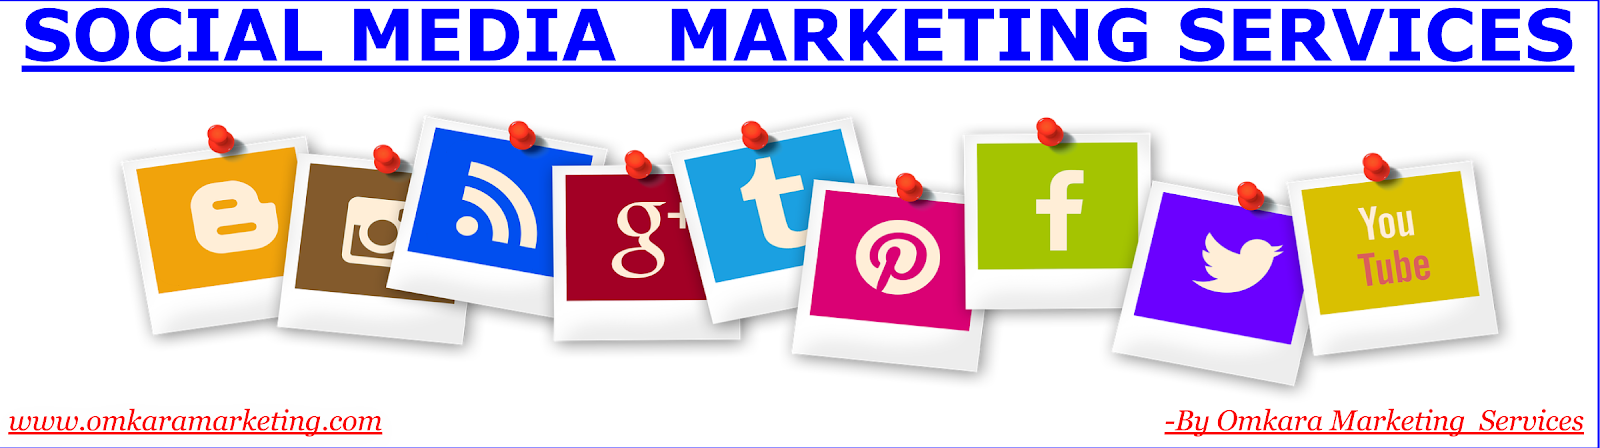 Social Media Marketing (SMM) Services | Social Media Management, Strategy, Monitoring by Omkara Marketing Services